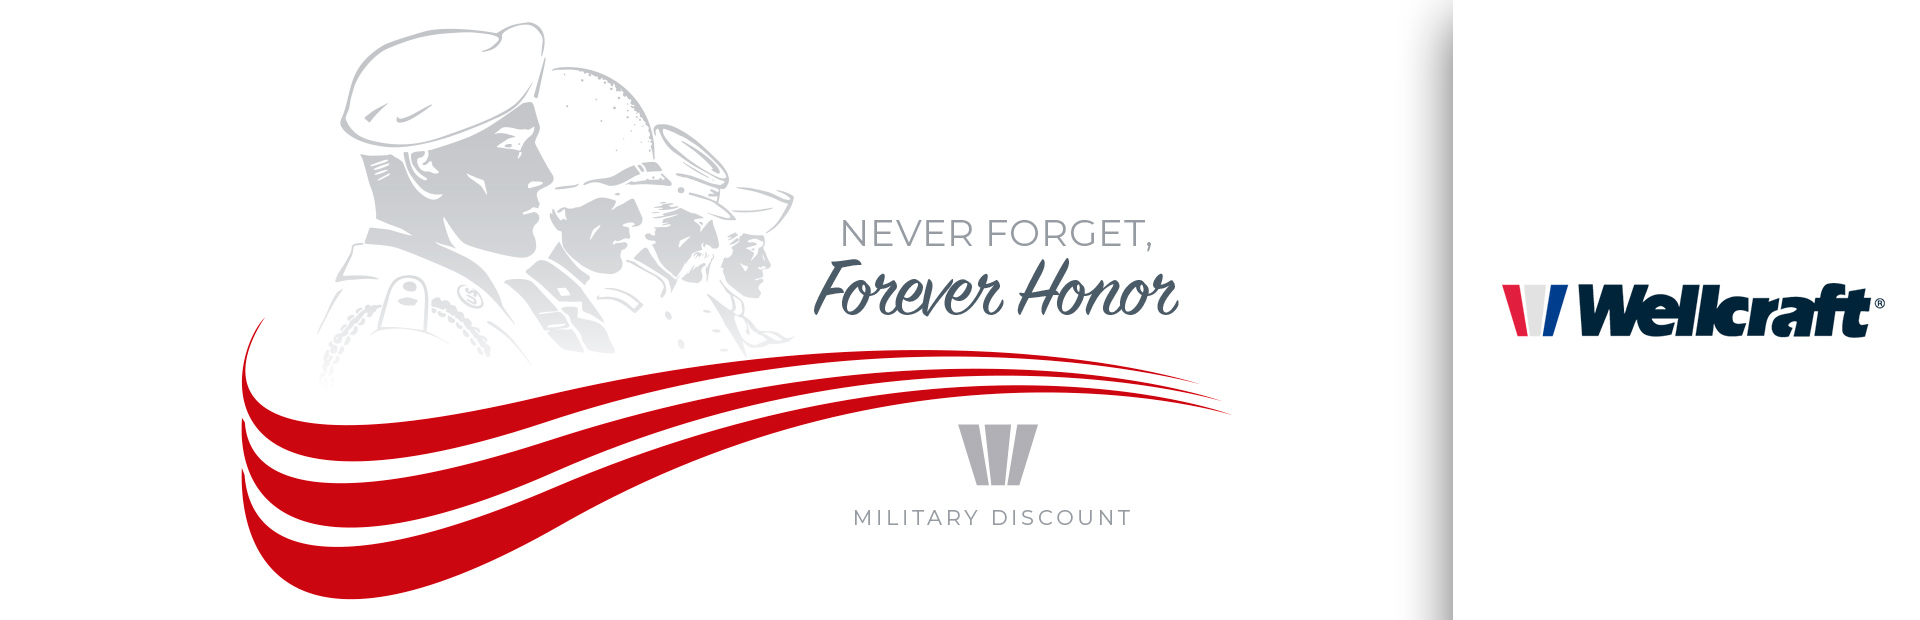 Wellcraft: Never Forget, Forever Honor Military Discount